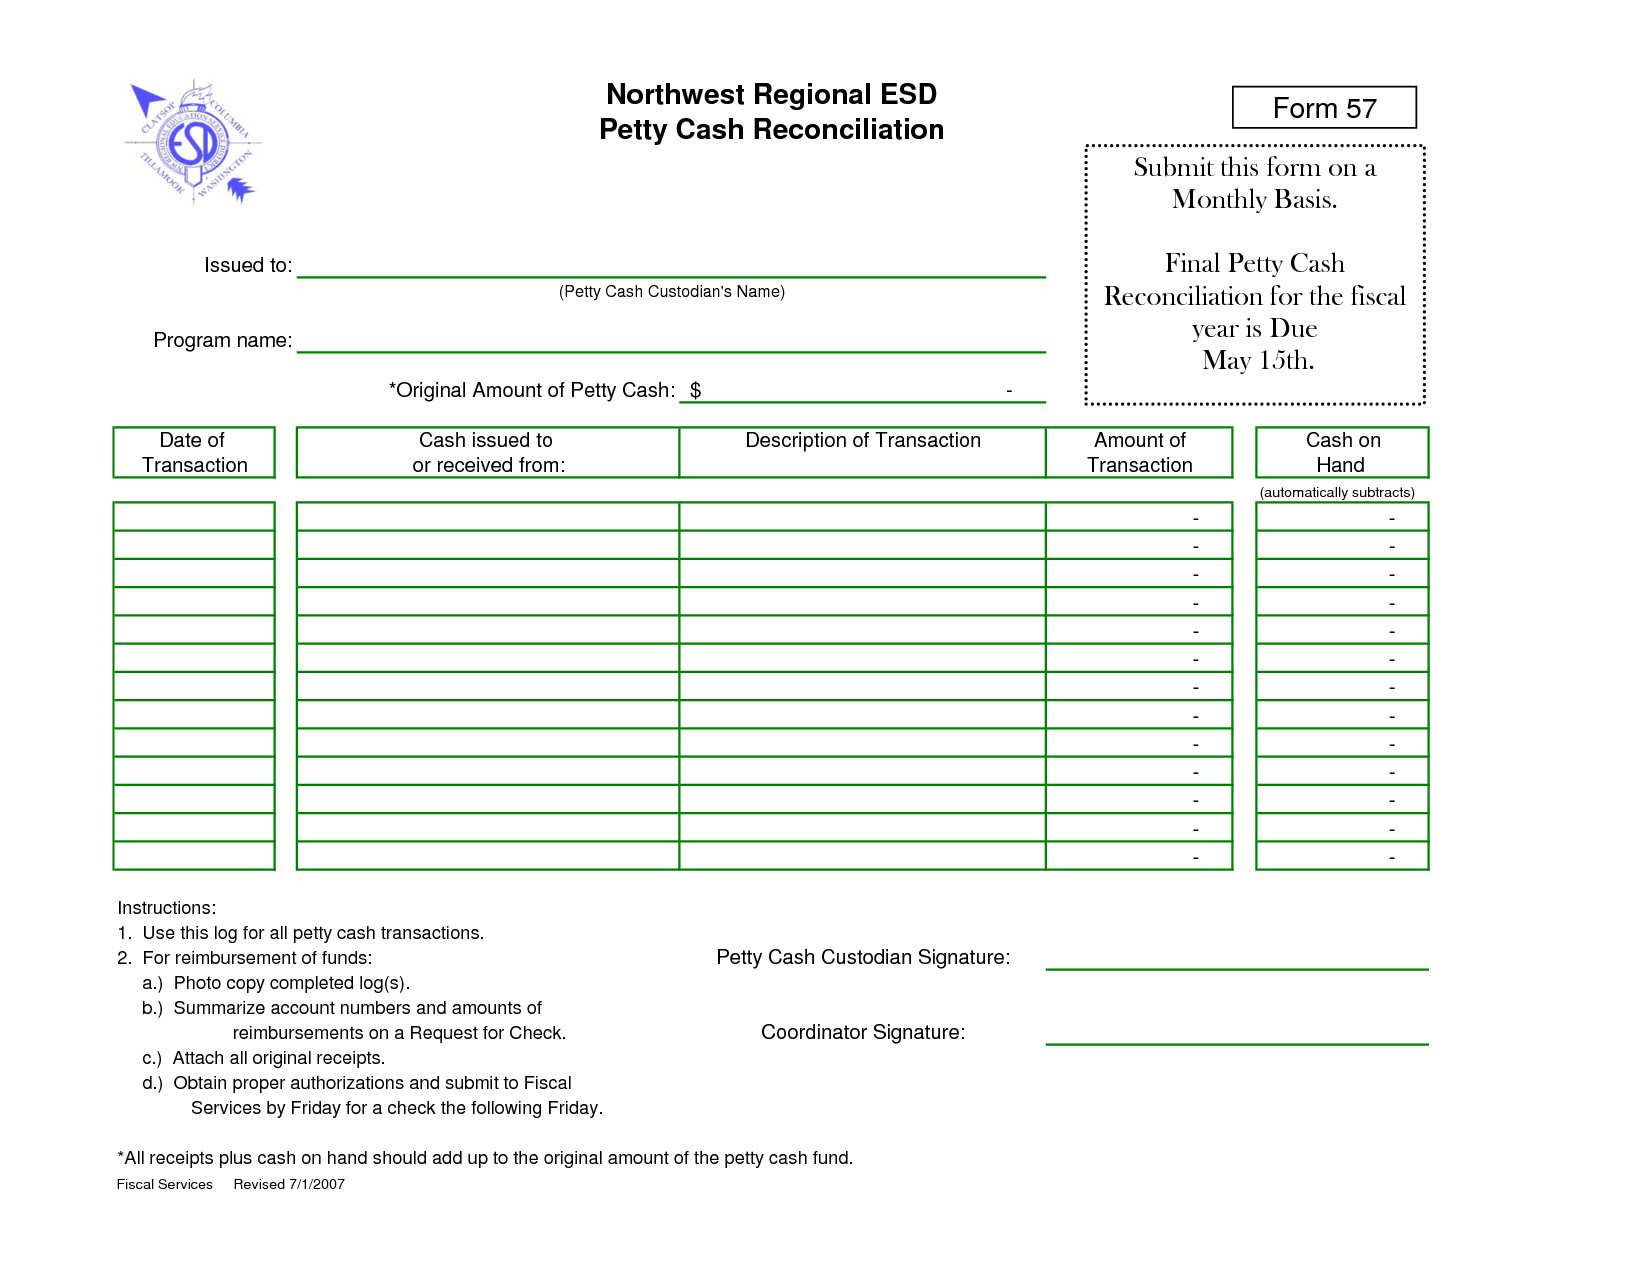 Petty Cash Reconciliation Form